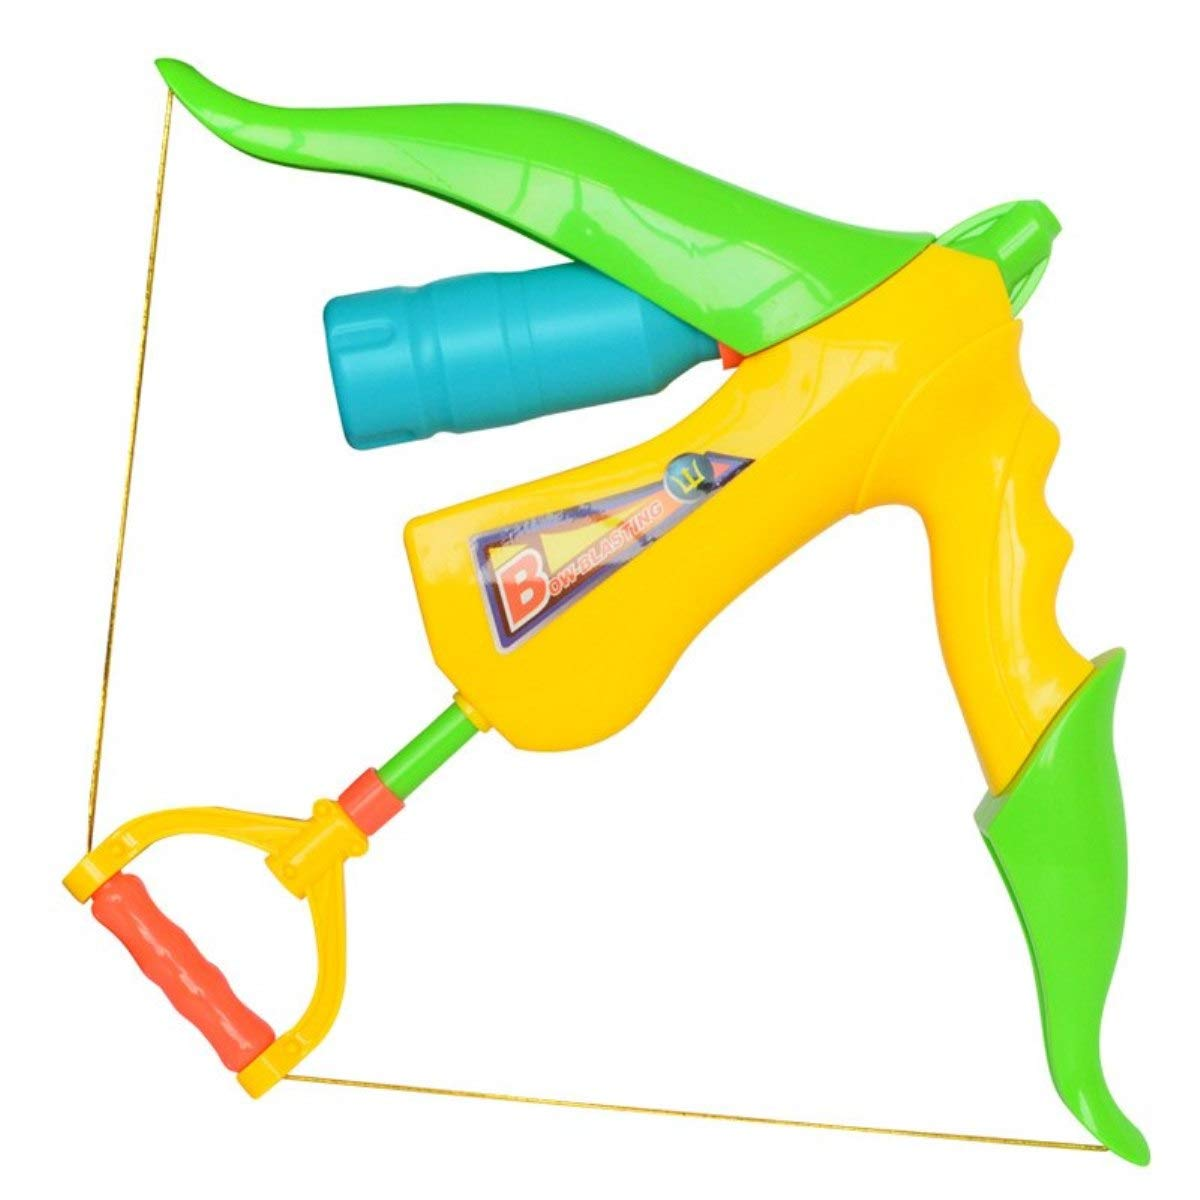 5billion Bow Pressure Pump Big Water Pistol Toys Summer Must-Haves Outdoor Water Fun Toys New Look Water Gun Toys for Children